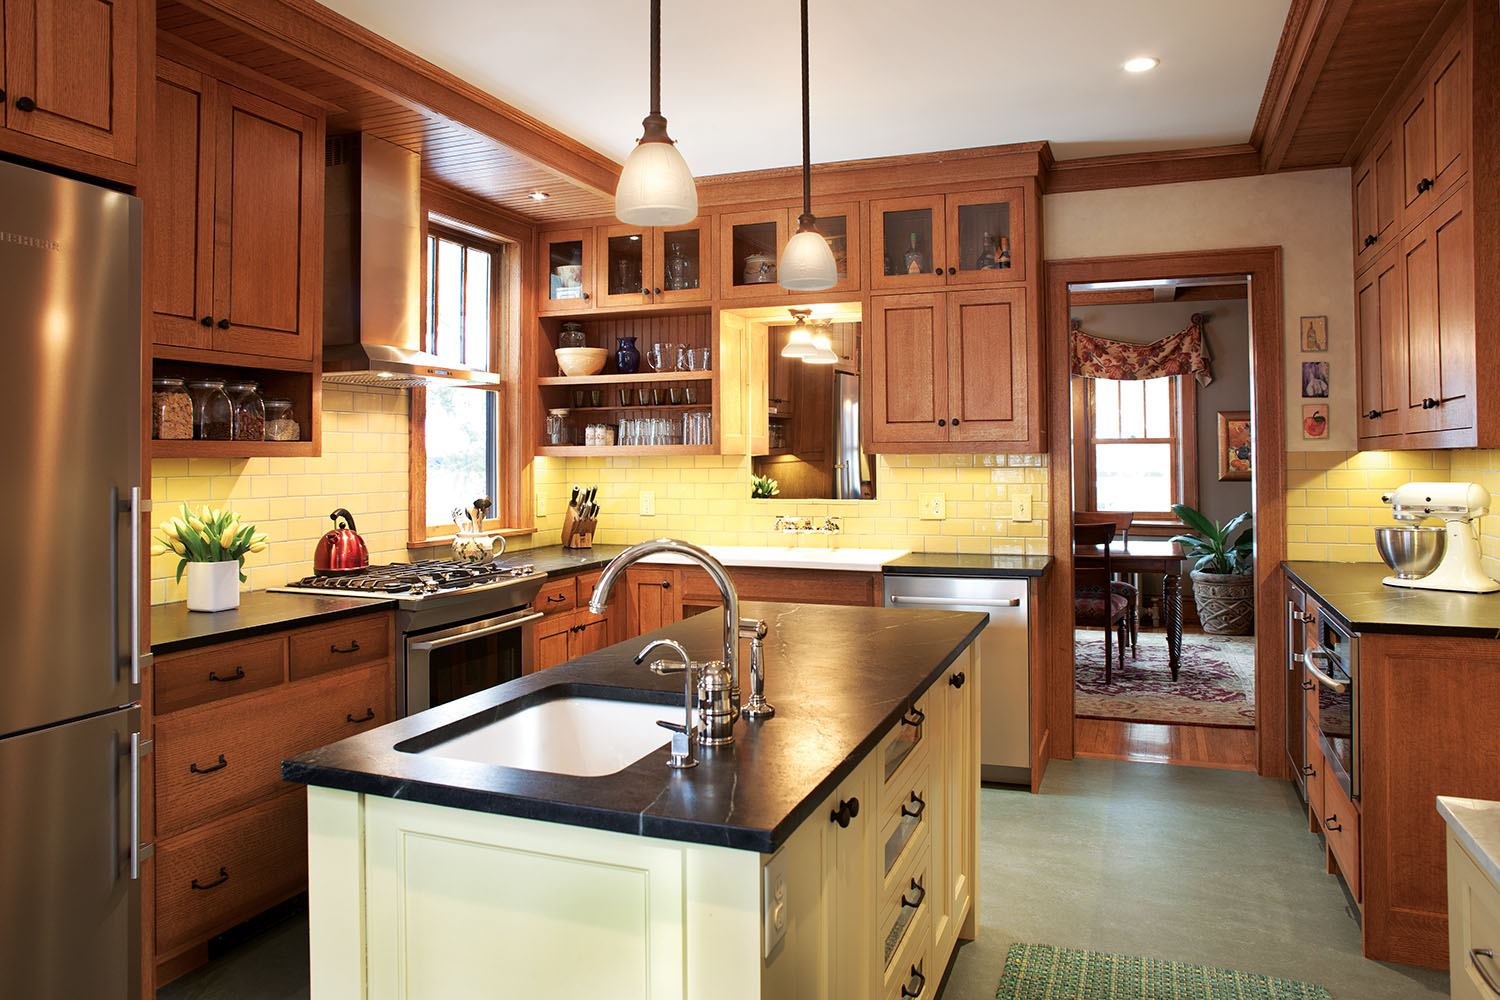 Http Www Customhomeonline Com Rooms Kitchen A Minneapolis Kitchen Remodel Captures The True Craftsman Spirit O